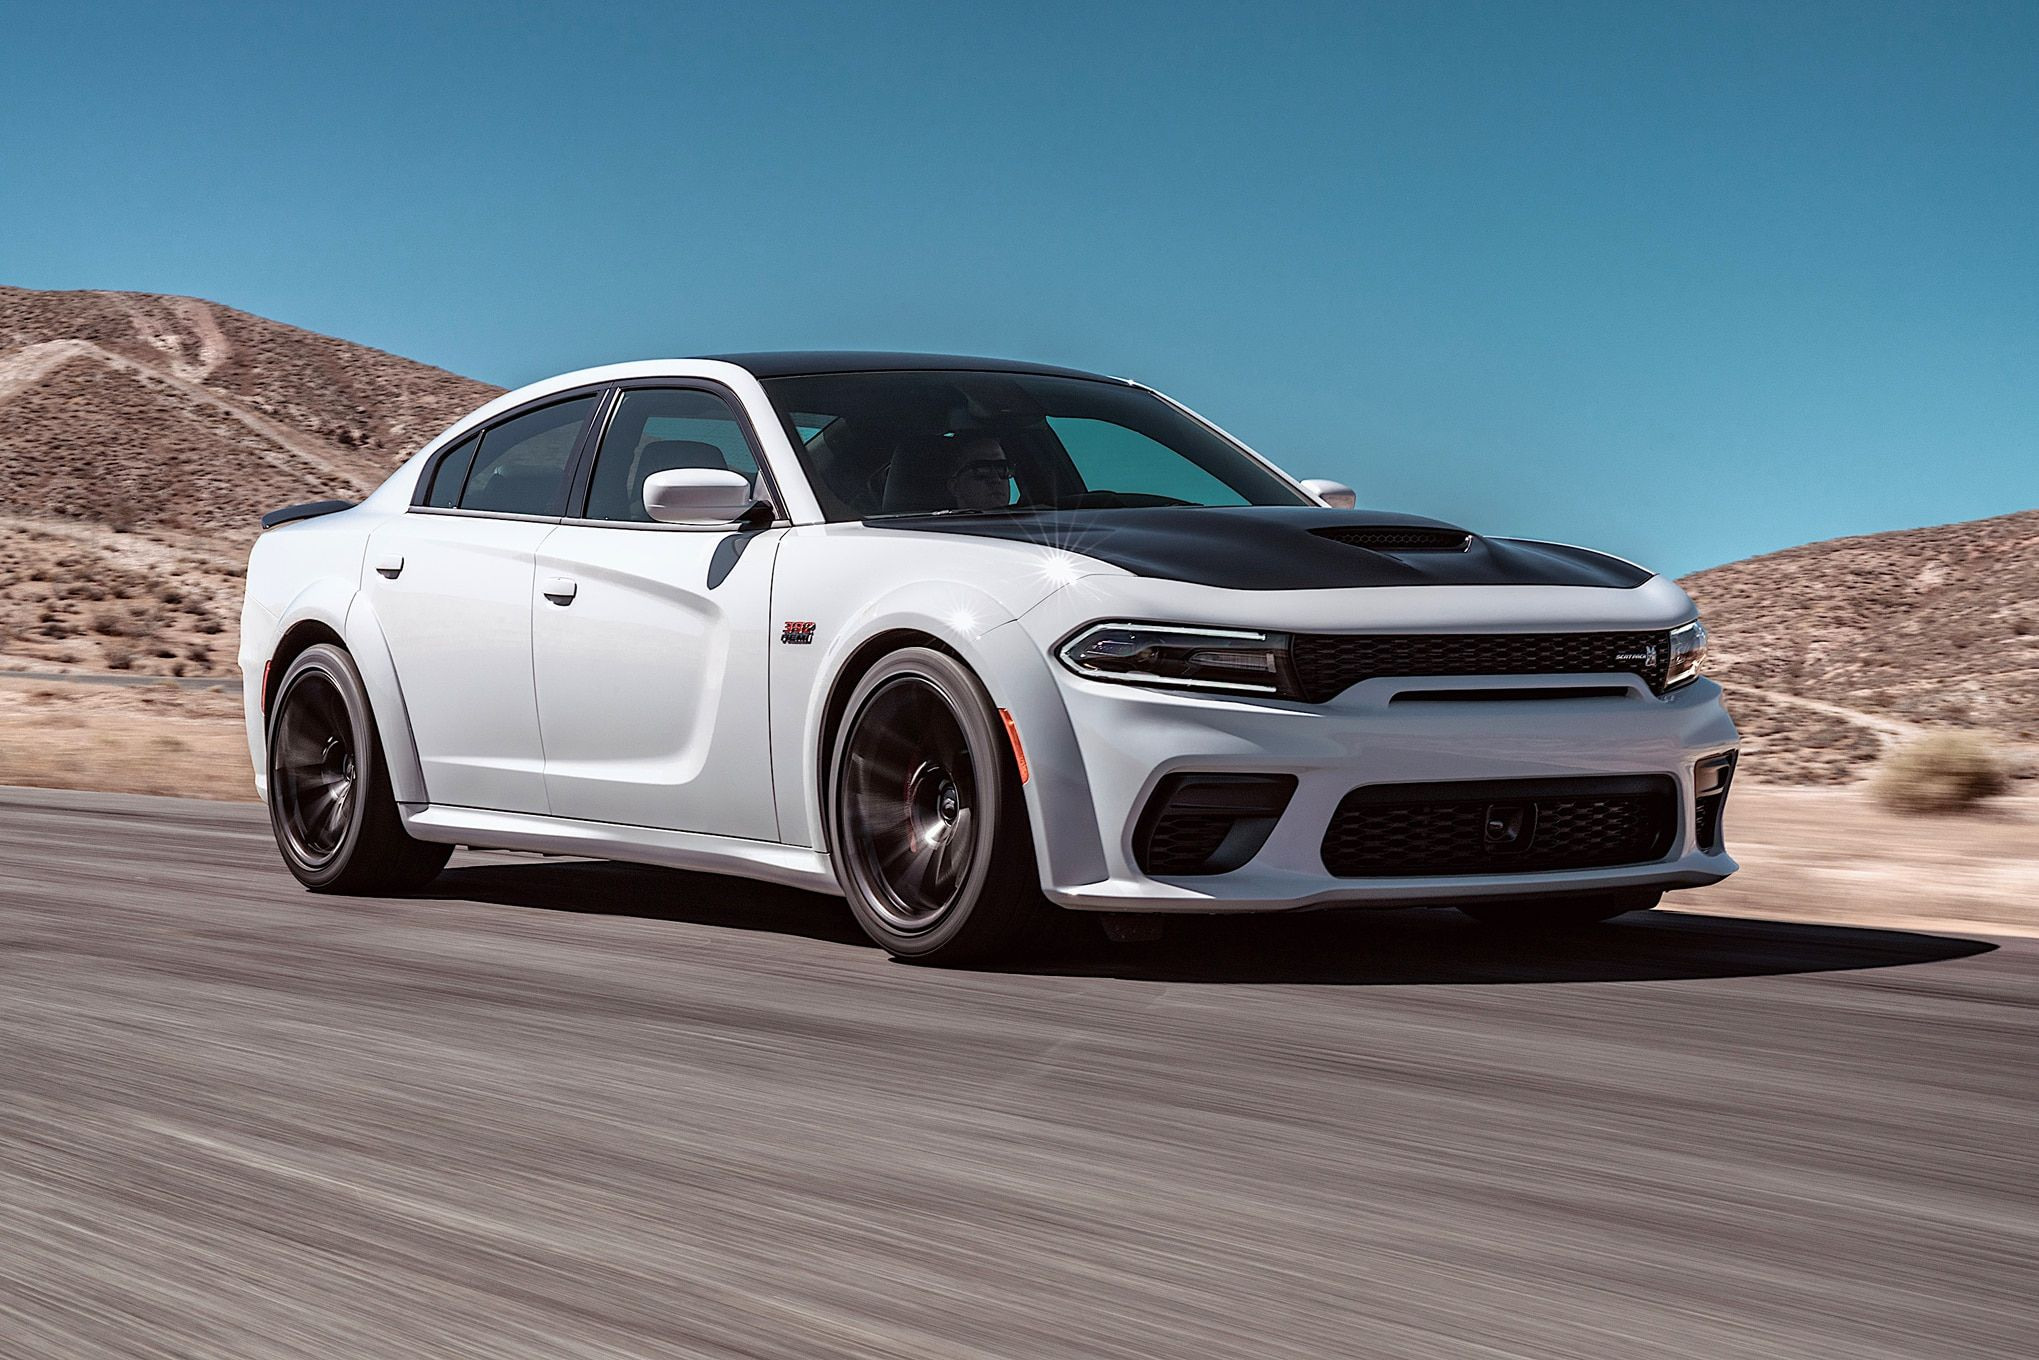 2020 Dodge Charger Scat Pack And Srt Hellcat Widebody Debut With Up To 707 Hp Carscoops Dodge Charger Srt Hellcat Charger Srt